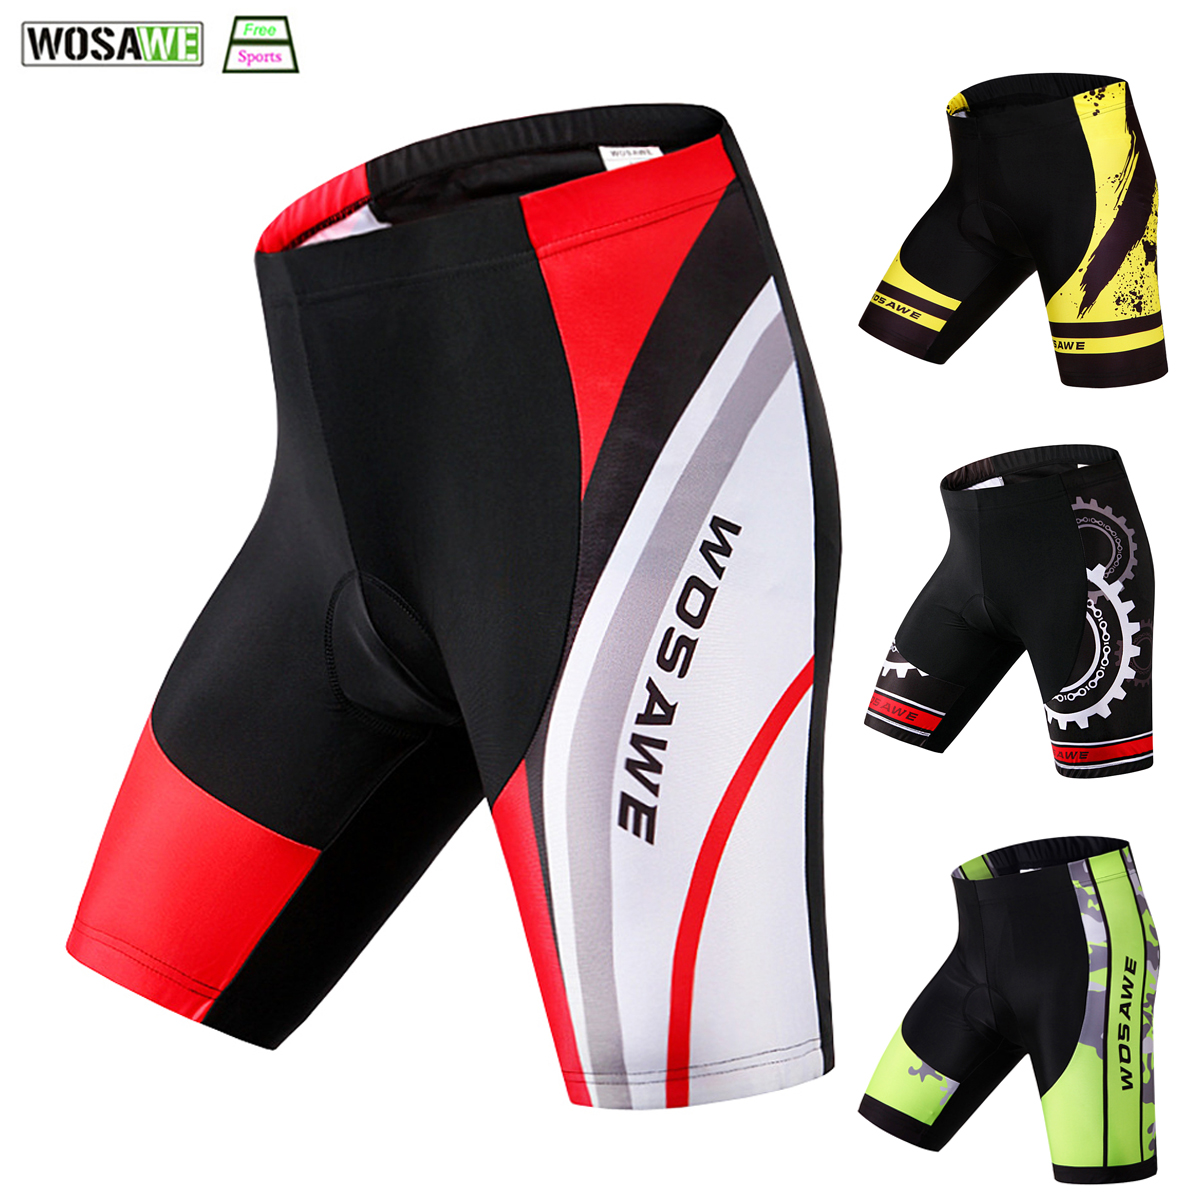 WOSAWE 5D Padded Cycling Shorts Breathable Shockproof MTB Bicycle Shorts Road Bike Shorts Man Women Cycling Tights